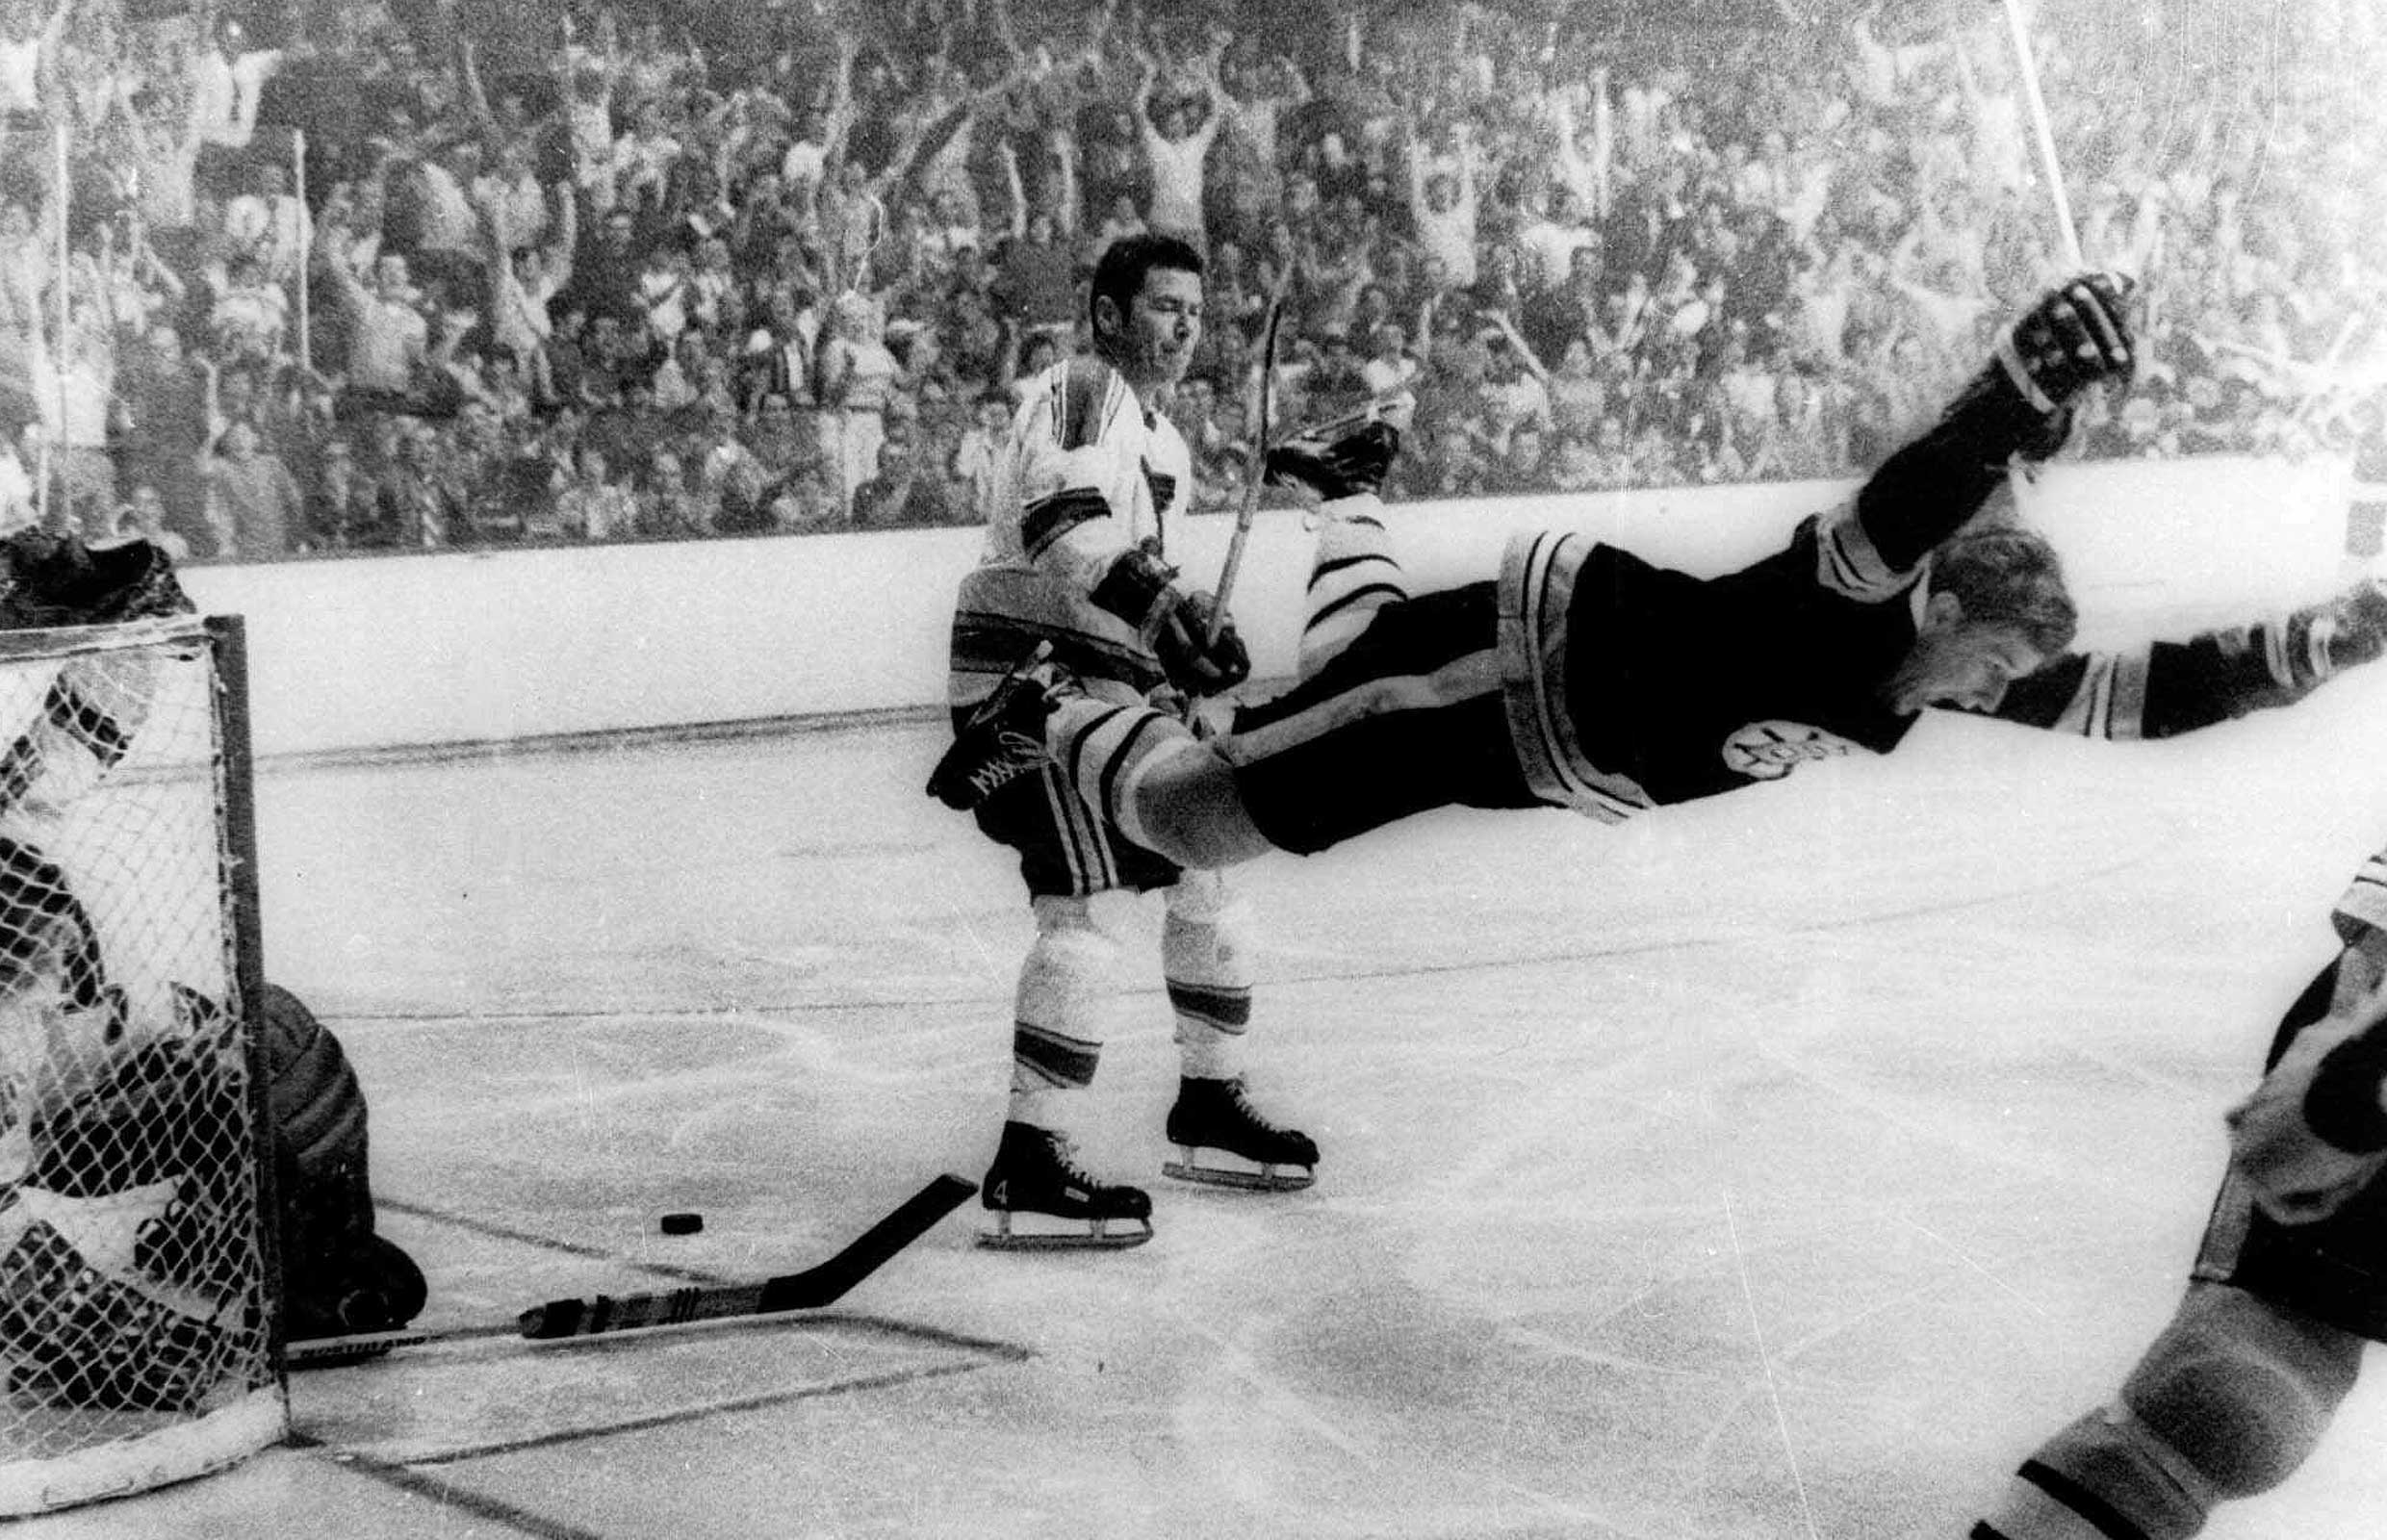 2 Bobby Orr goal 1970 Stanley Cup Finals - longest Stanley Cup droughts